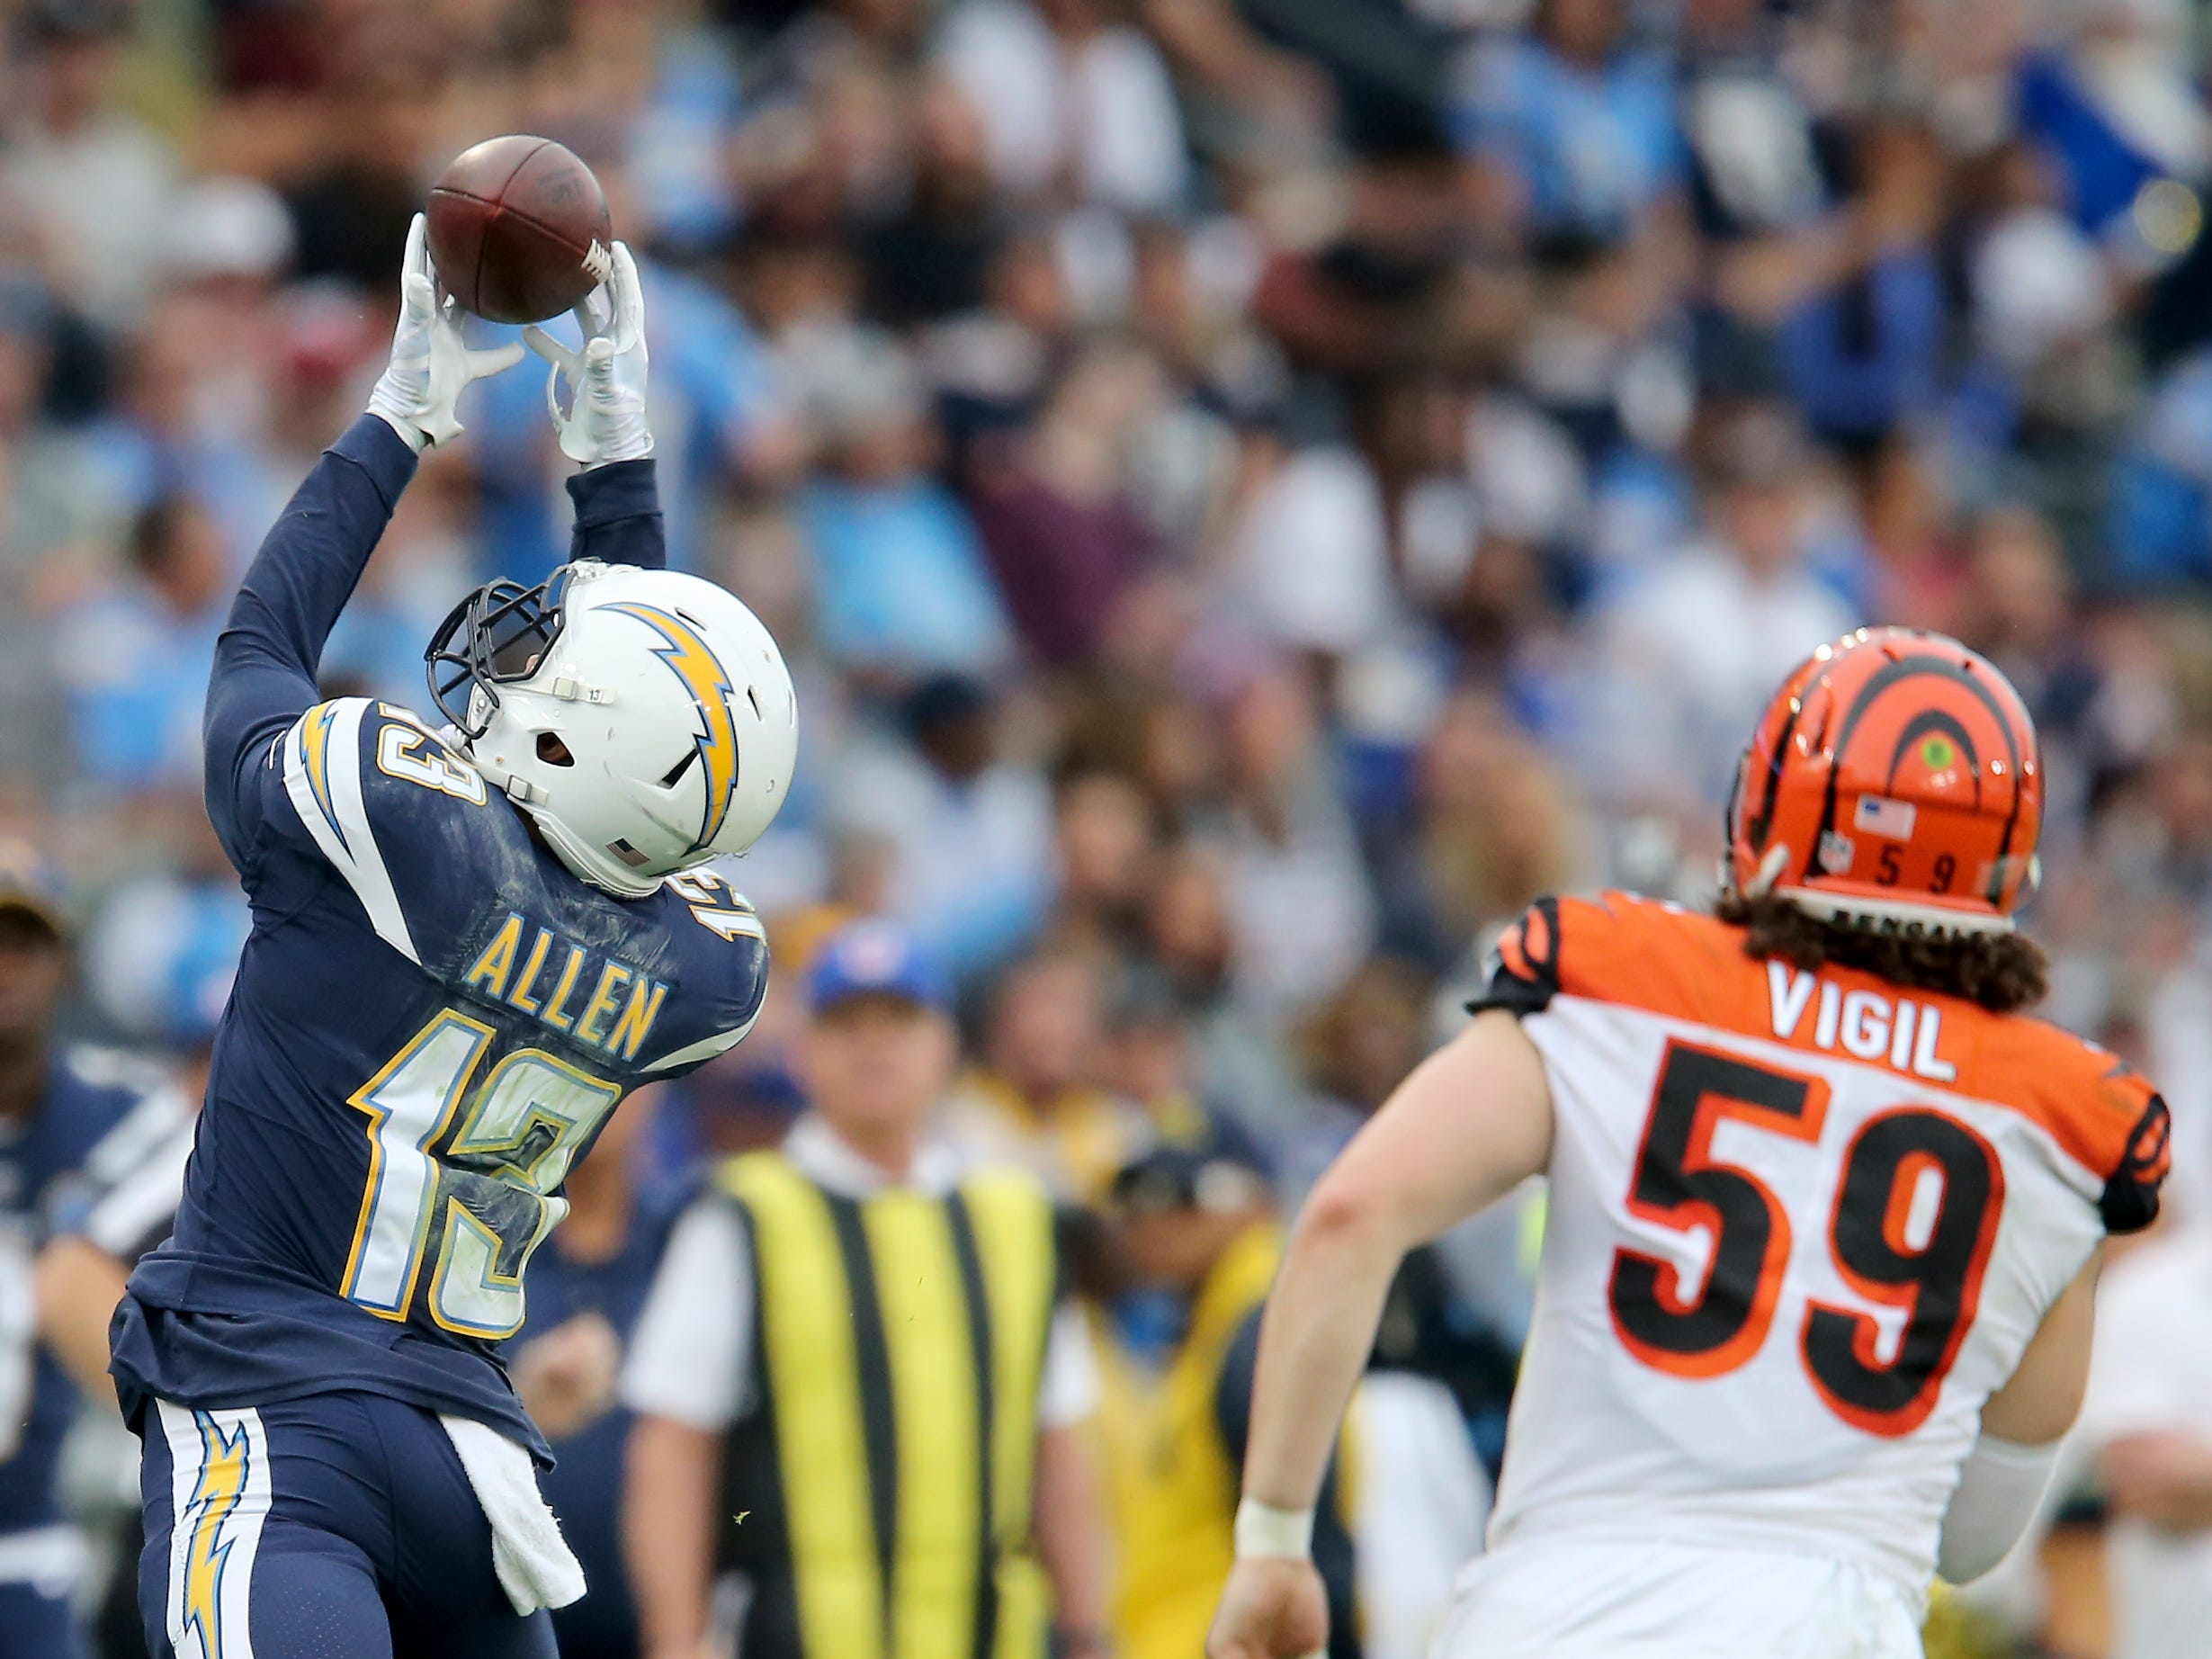 Los Angeles Chargers wide receiver Keenan Allen (13) completes a catch as Cincinnati Bengals outside linebacker Nick Vigil (59) gives chase in the fourth quarter of a Week 14 NFL football game, Sunday, Dec. 9, 2018, at StubHub Center in Carson, California.